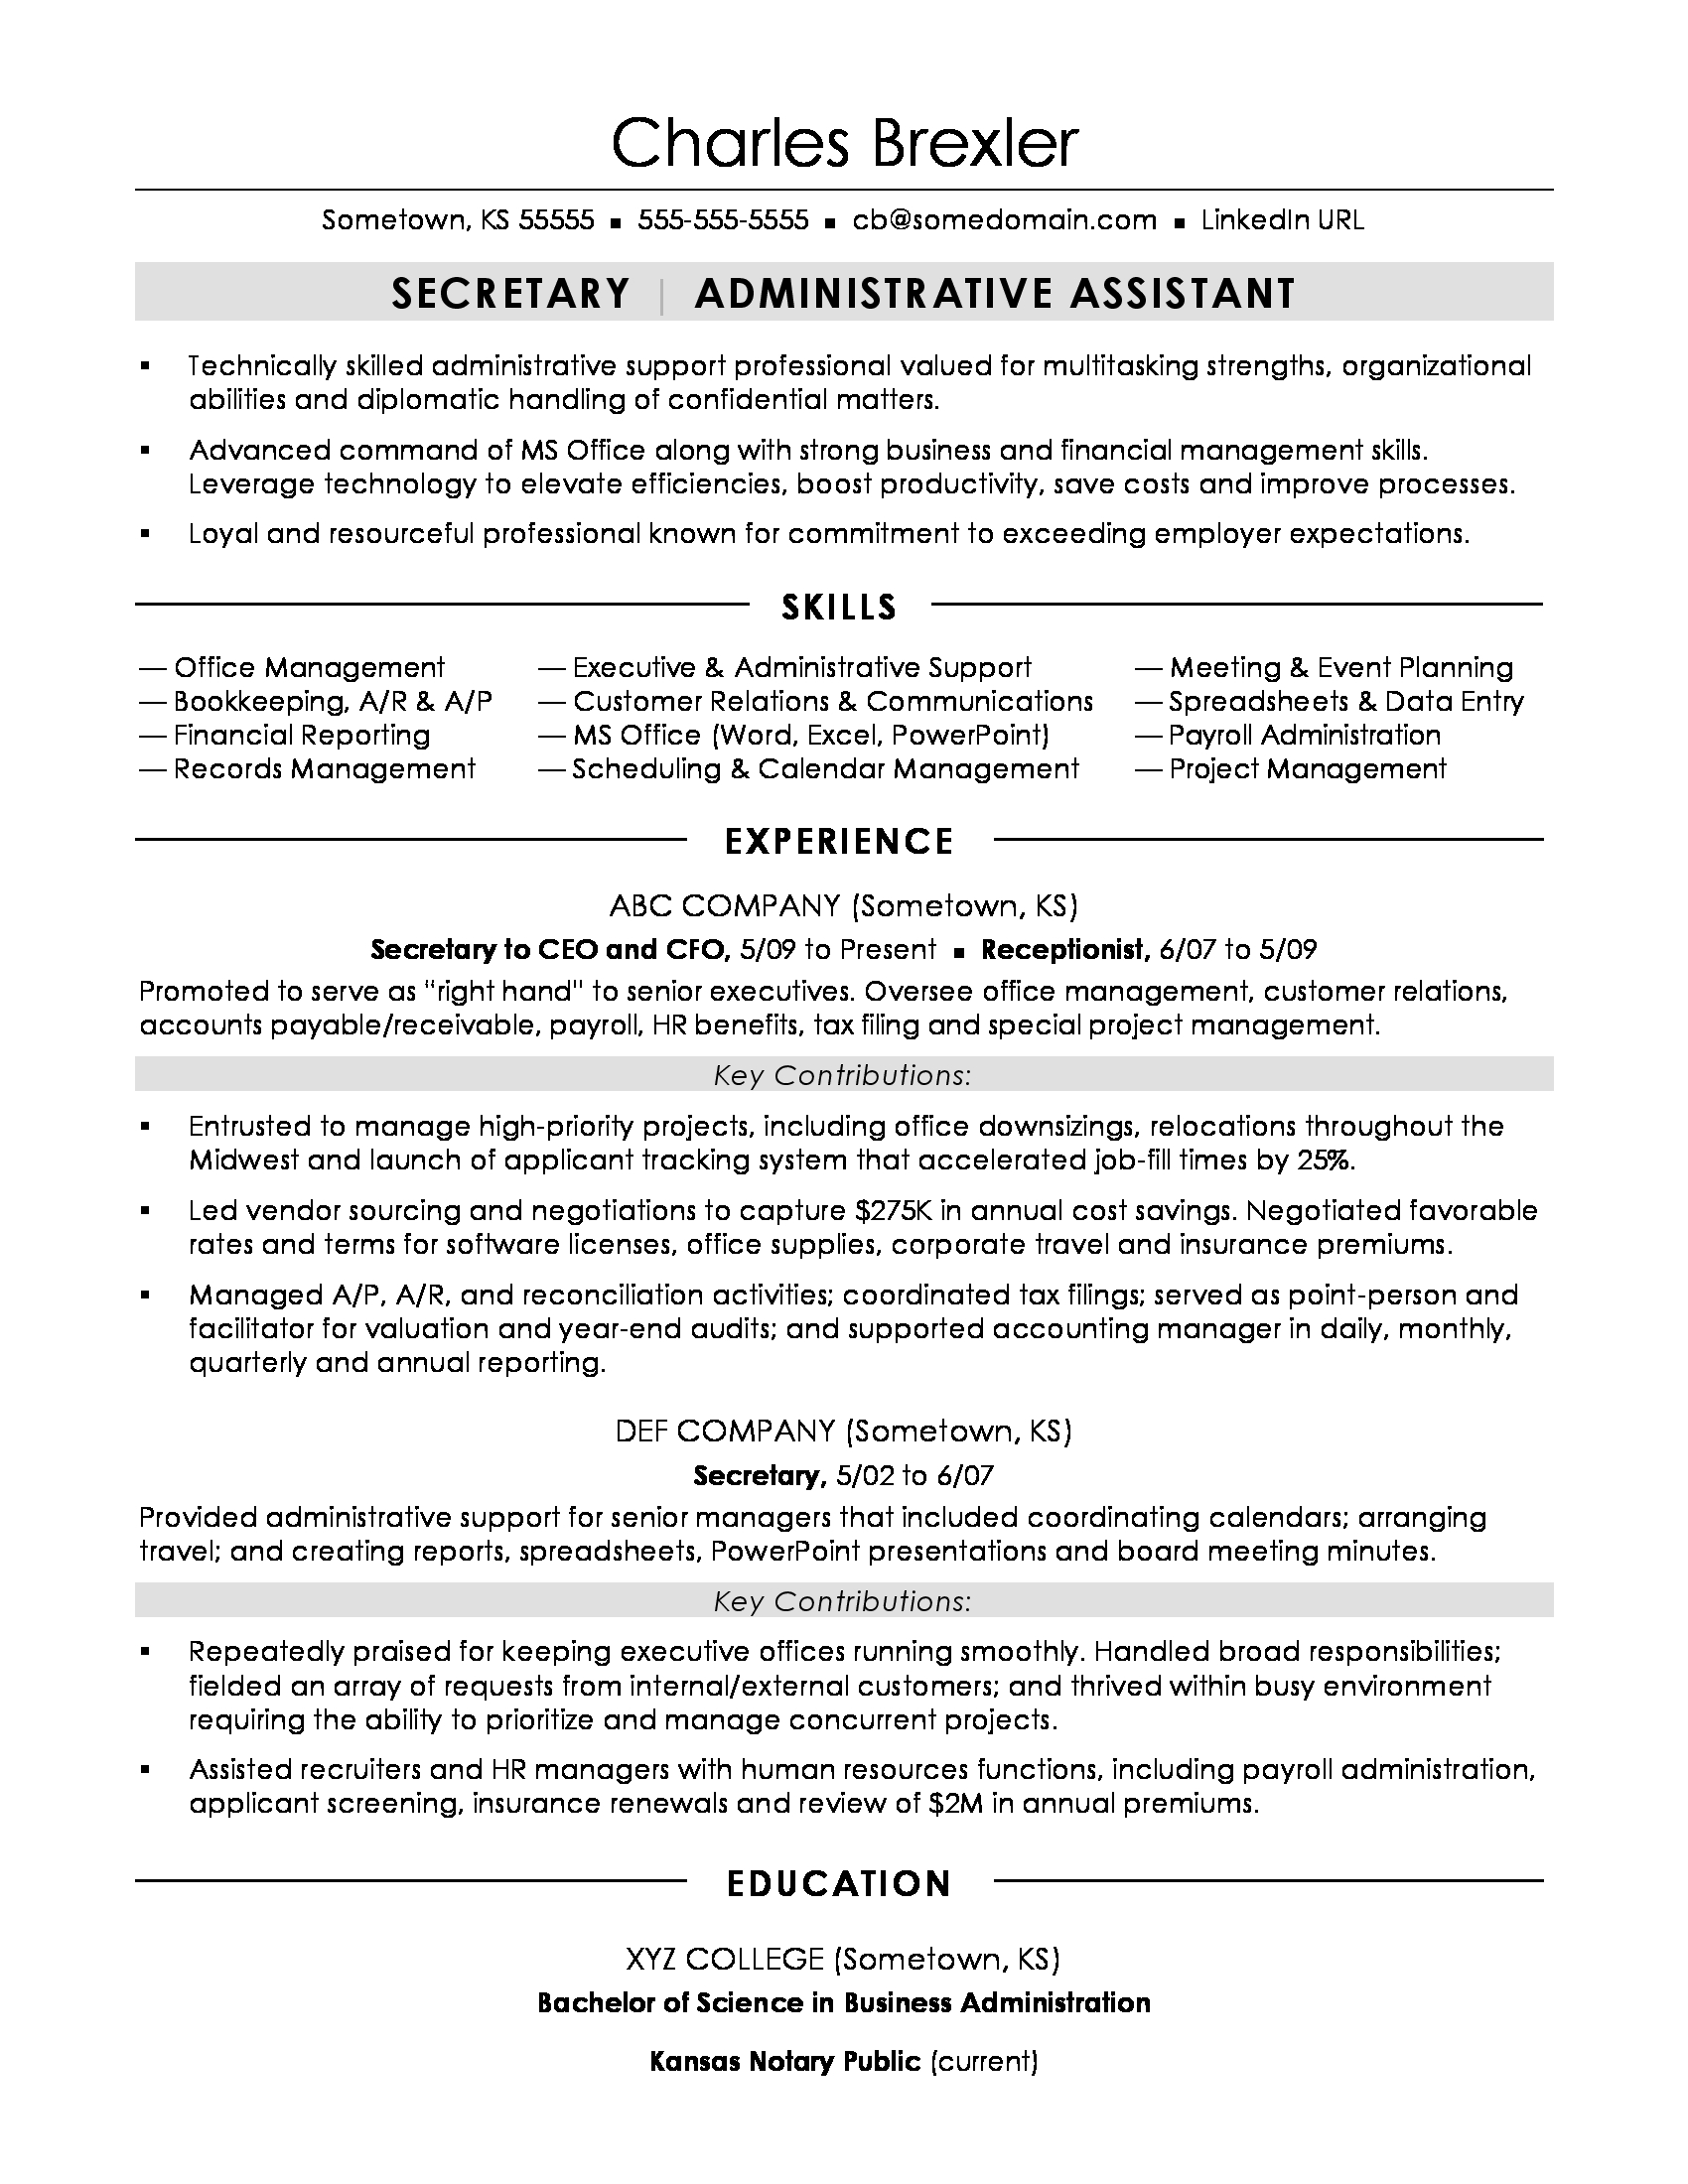 School secretary resume examples